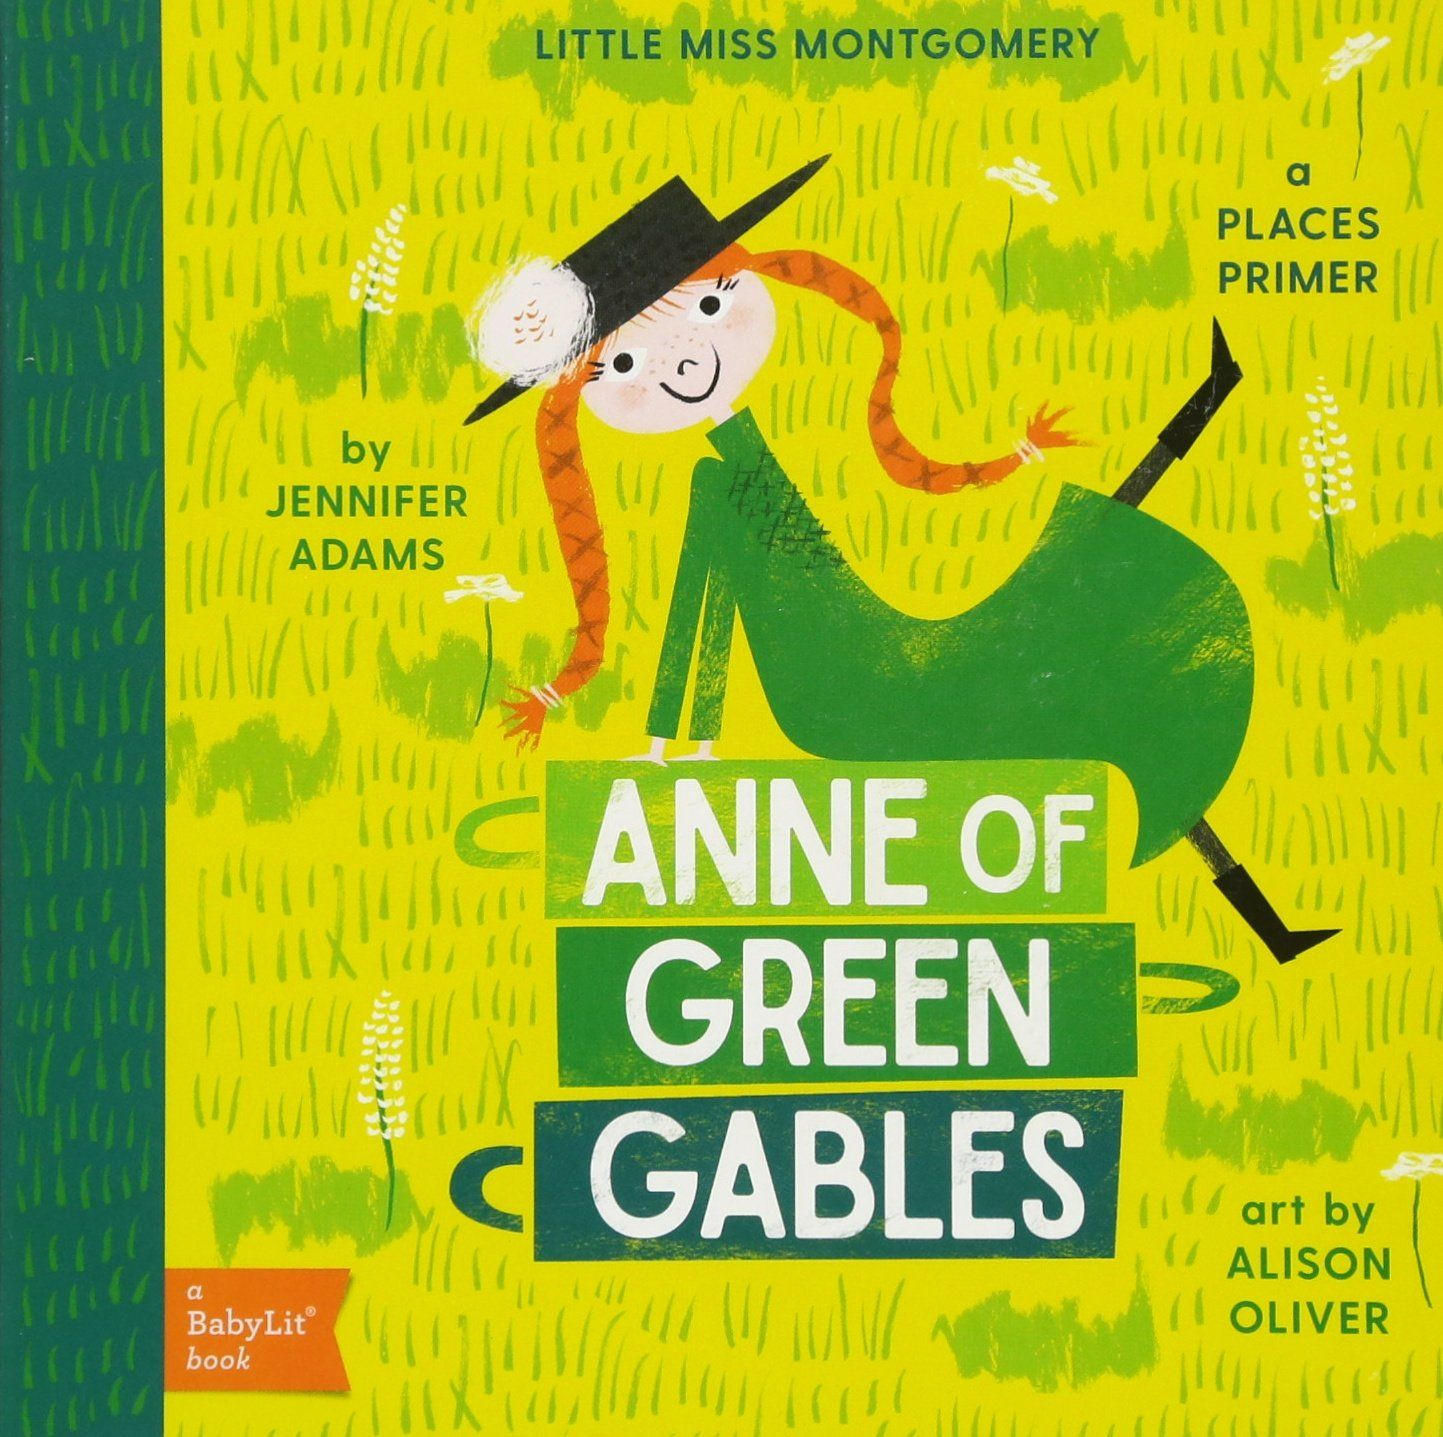 Anne Of Green Gables Babylit In Honor Of Easter 2019 Anne Of